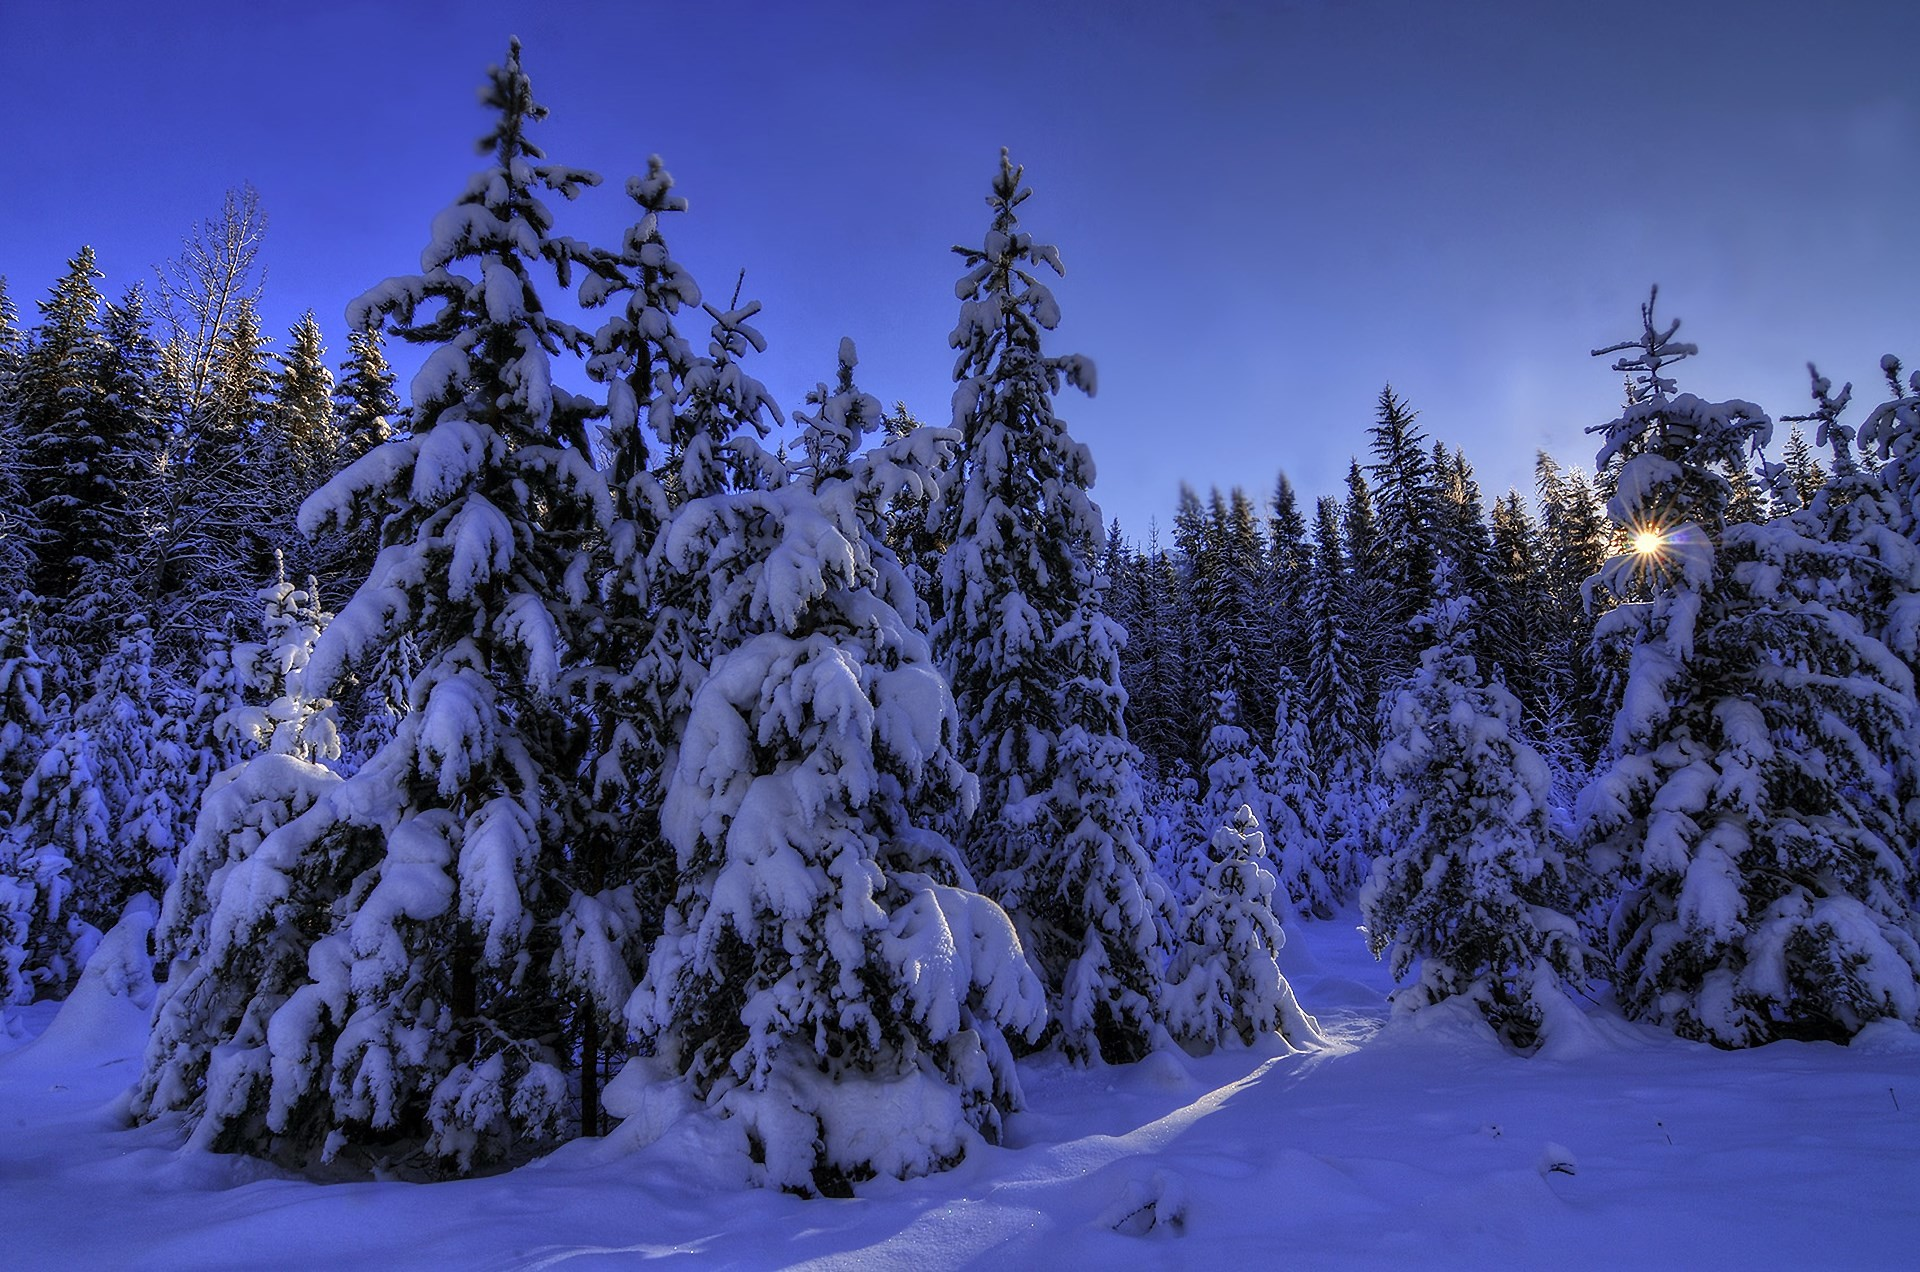 2017-03-25 – winter theme background images, #1656363